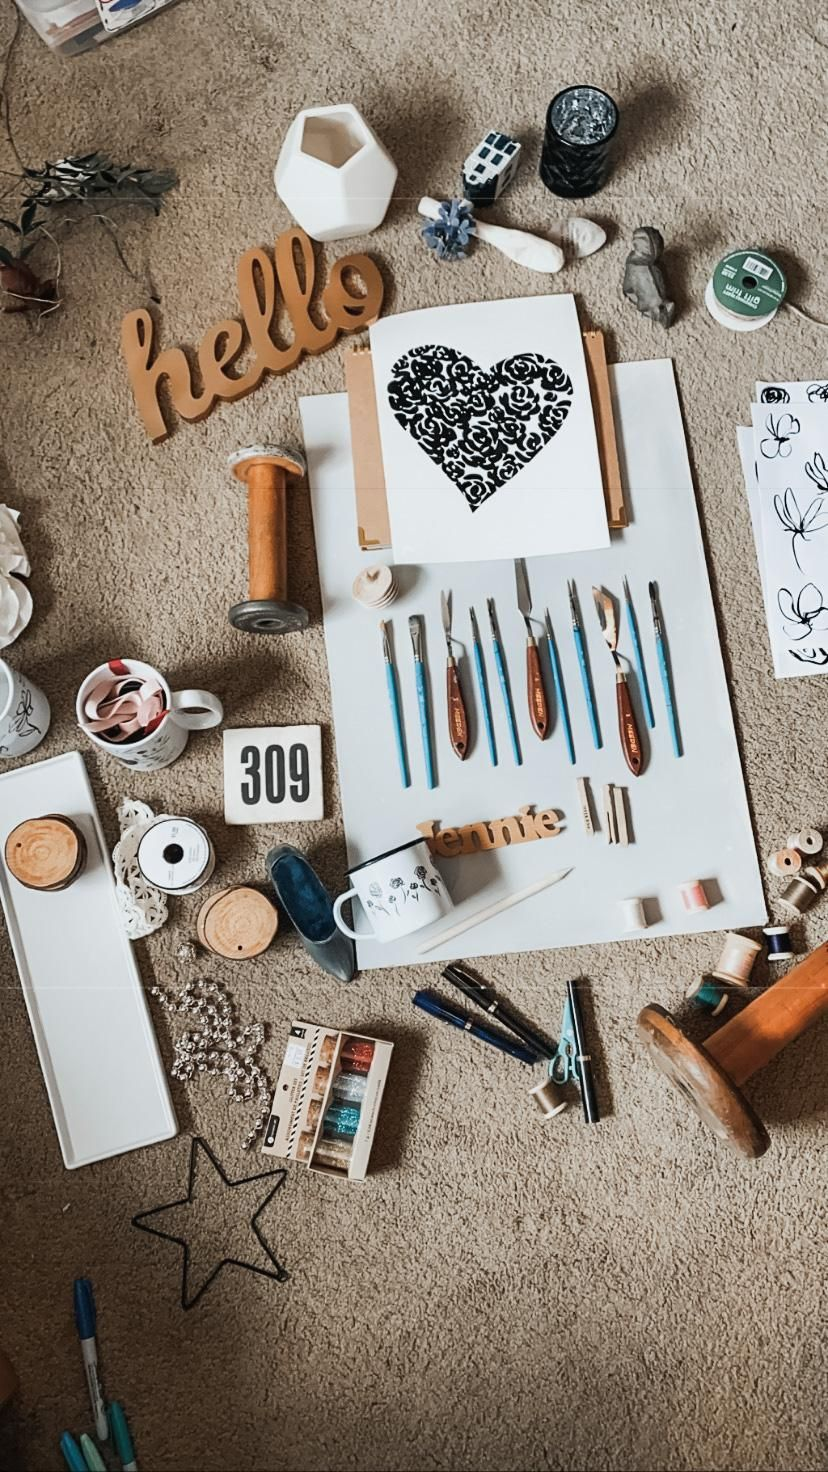 Flatlay - by Toboggan Avenue - image 3 - student project